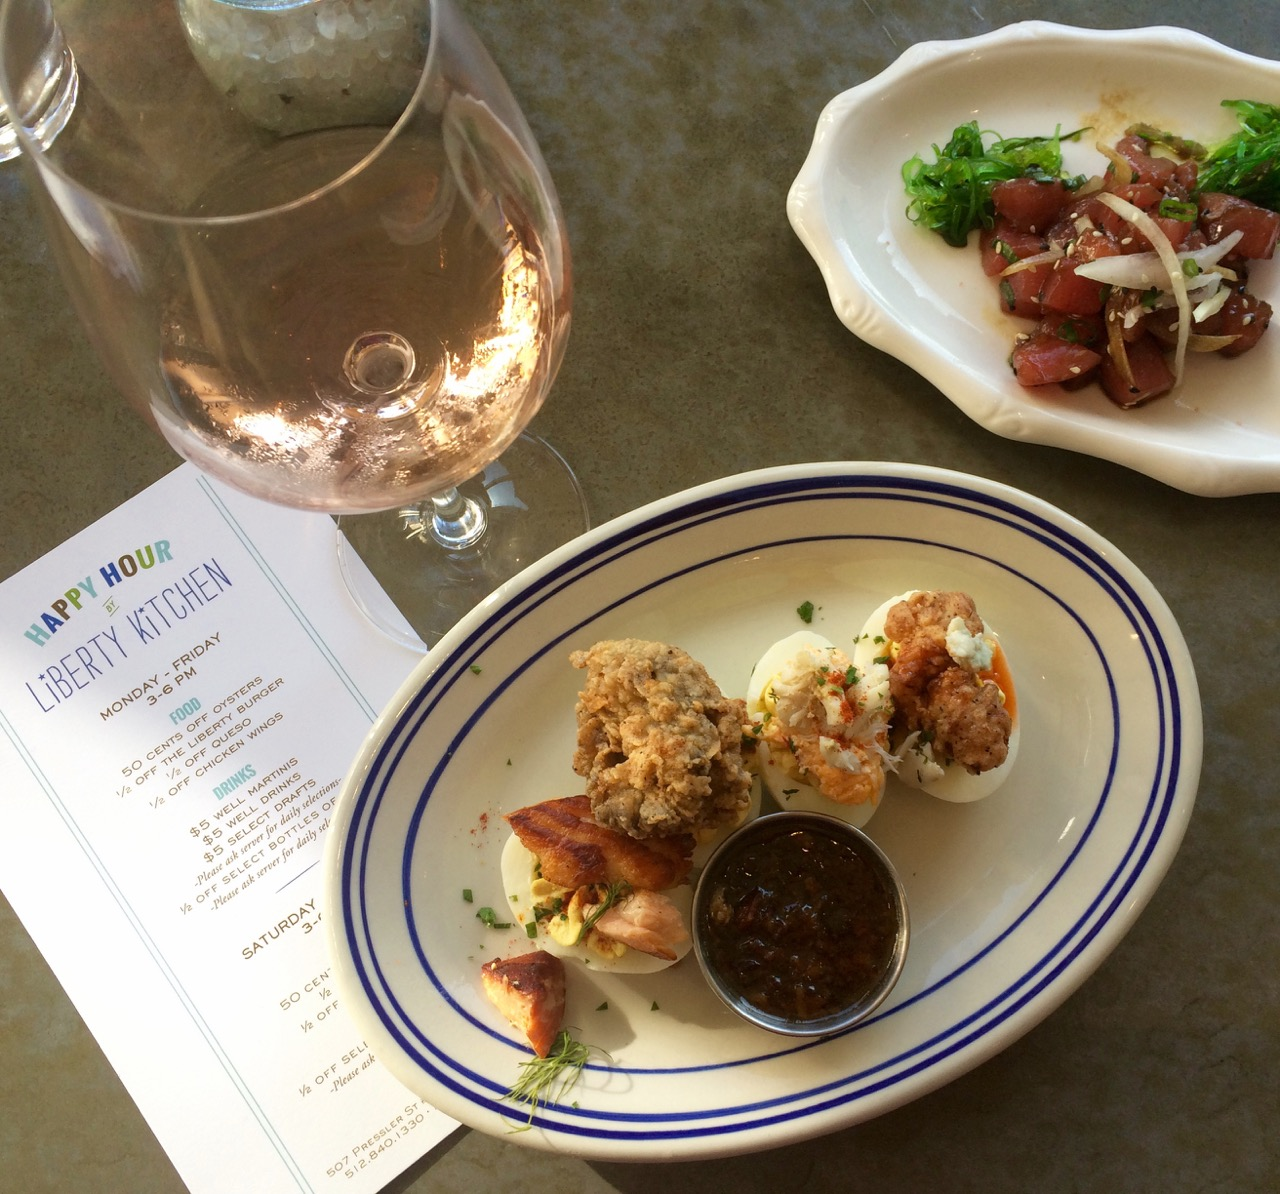 Life, Liberty Kitchen, and the Pursuit of Happy Hour - A Time To Kale